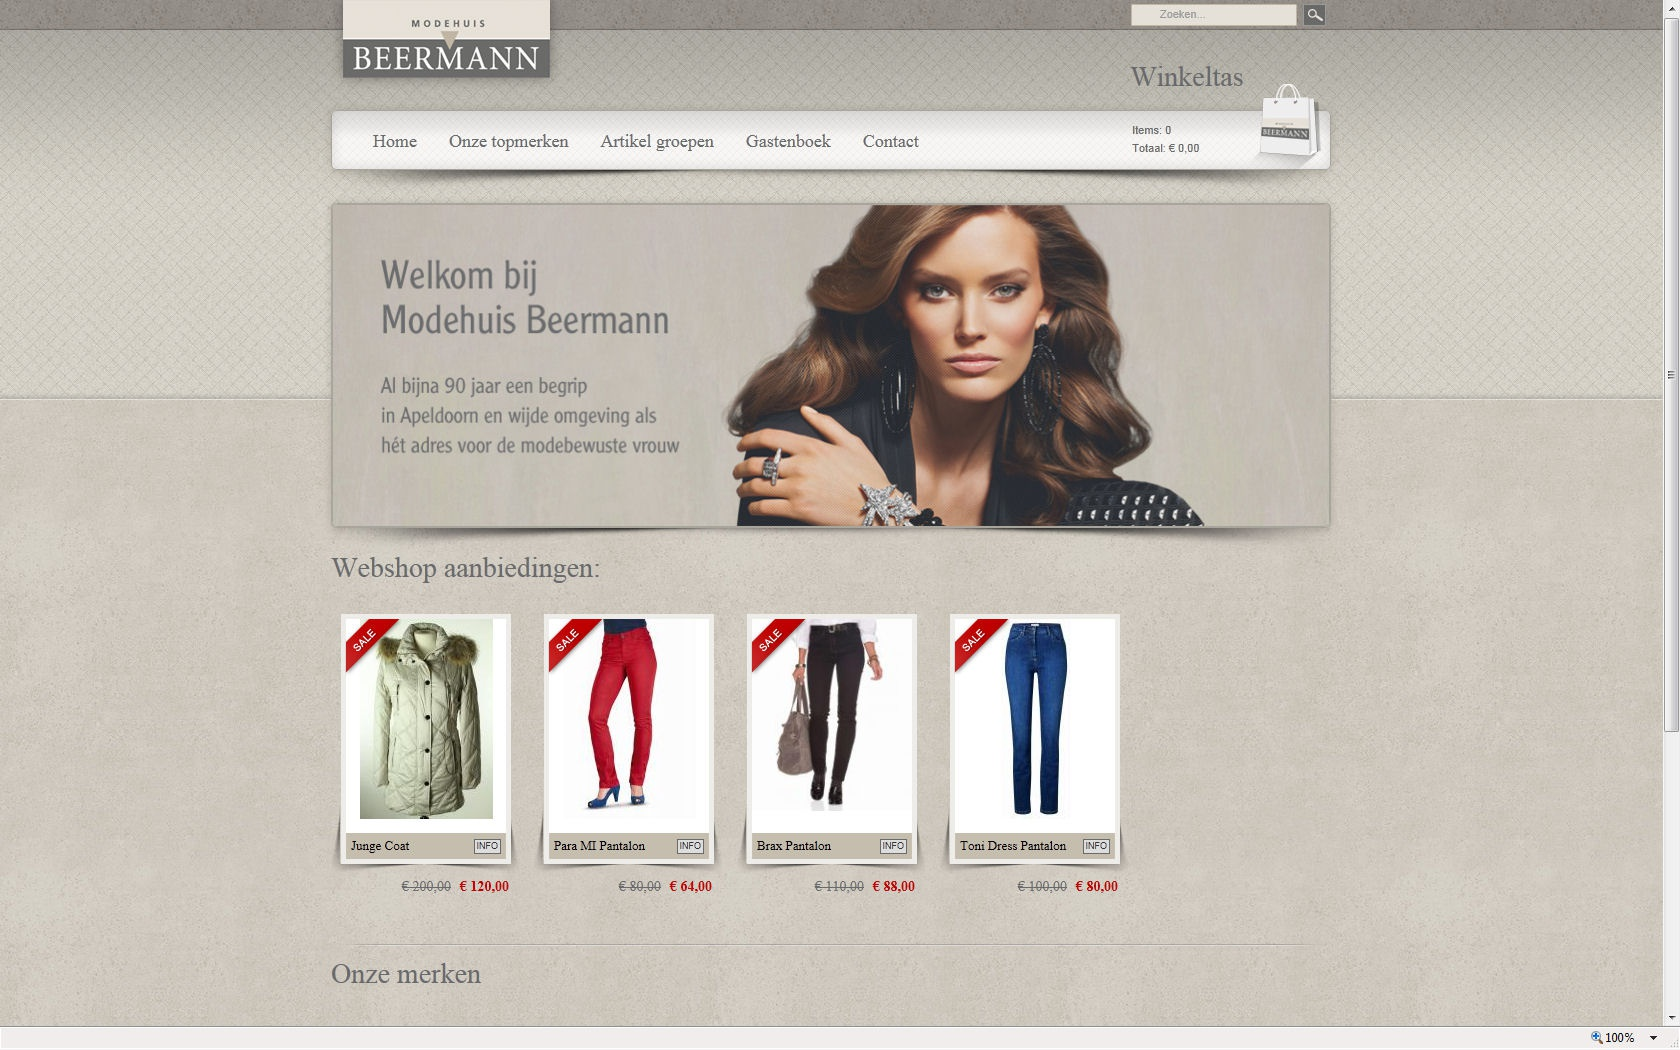 beermann-apeldoorn-modehuis-fashion-easyPOS-software-damesmode